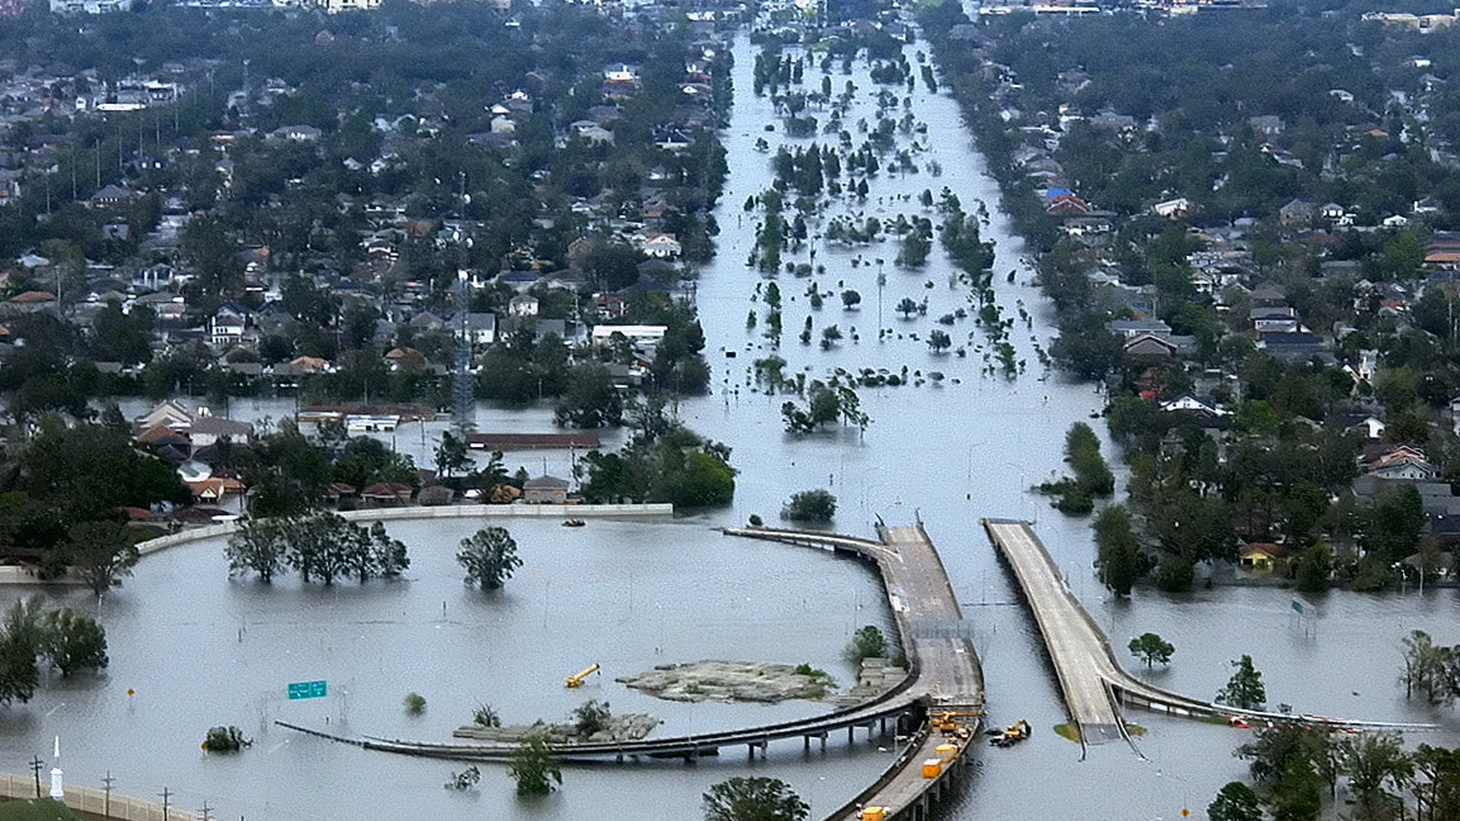 Rising tides already threaten major cities and military bases around the country. Now it's predicted that sea levels will increase ten times faster than estimated before. Are public officials playing down the danger? Is there any way to prepare?